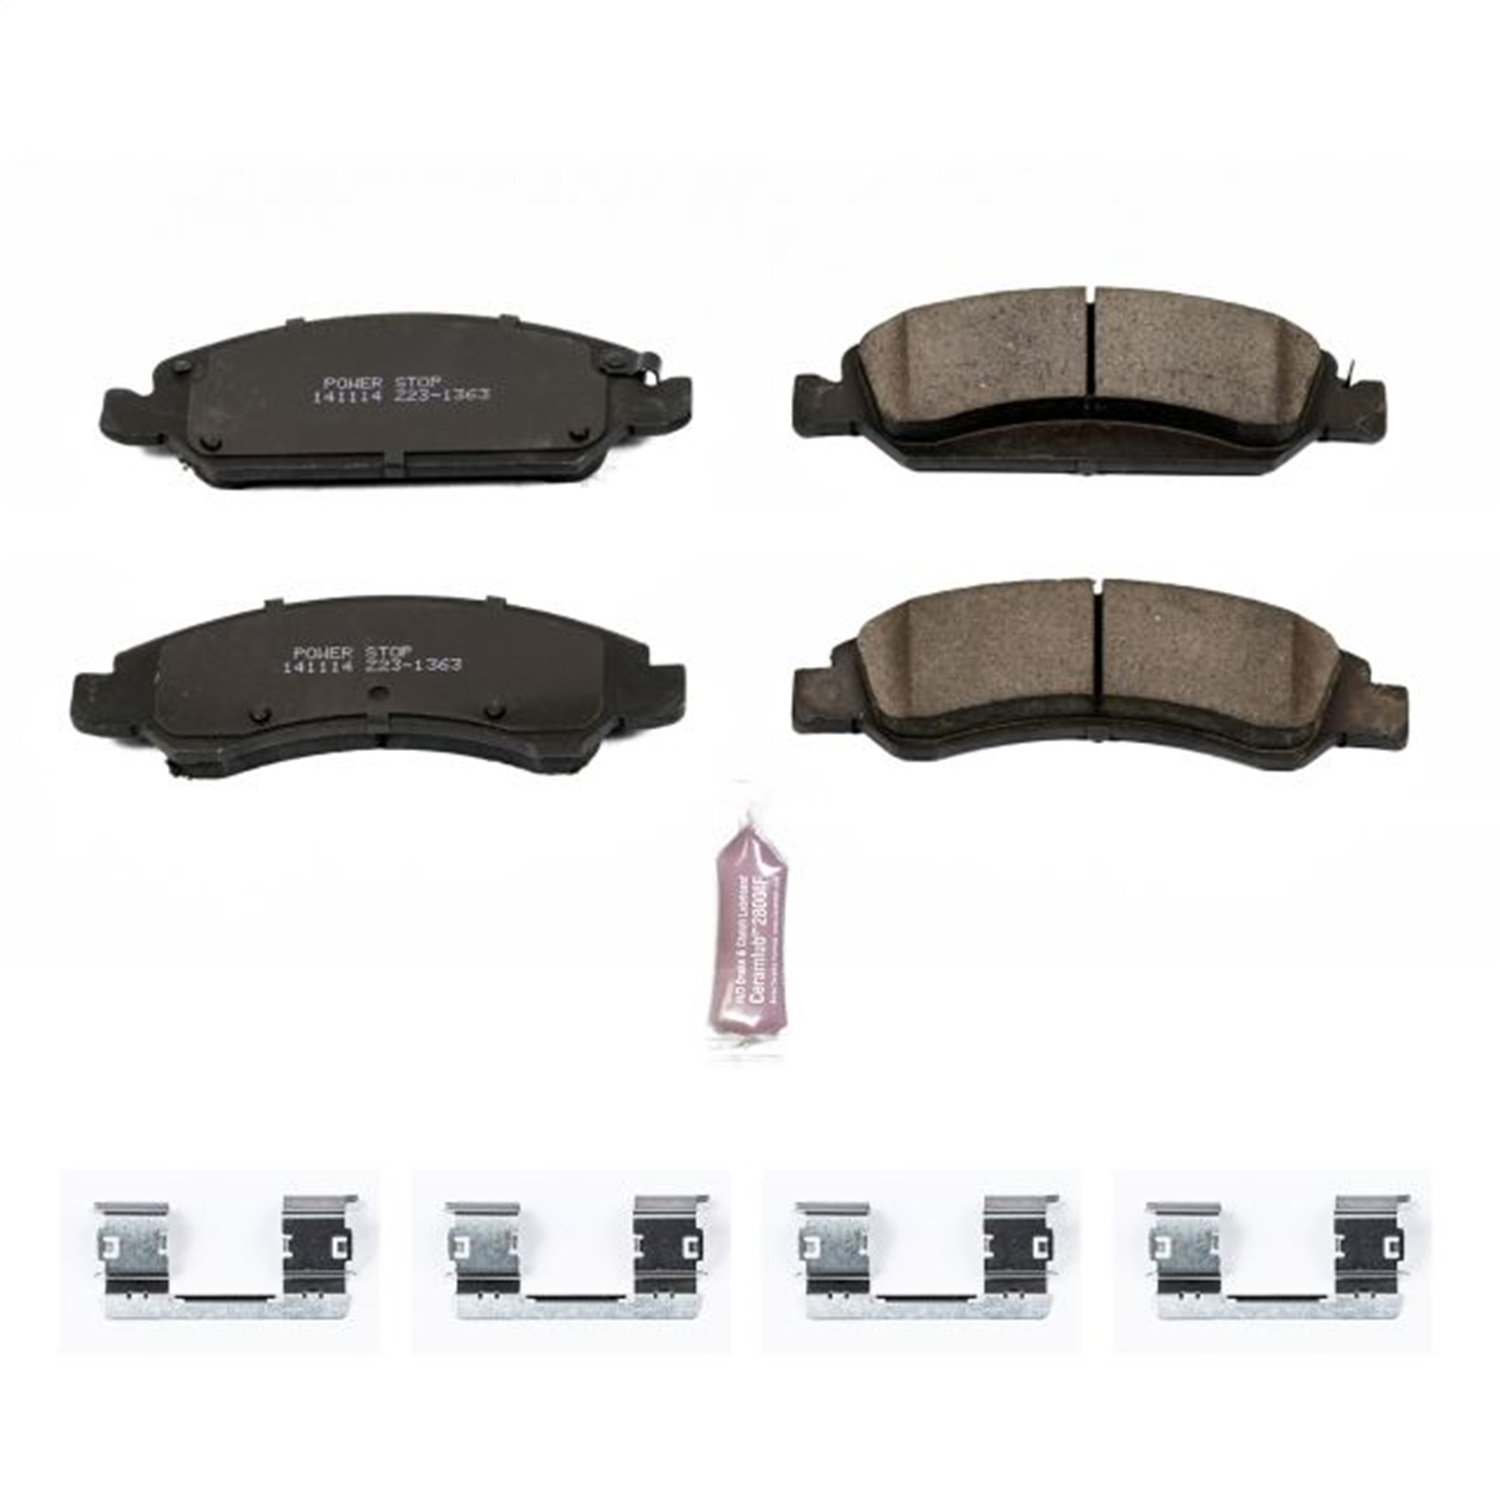 Power Stop (Z23-1363) Z23 Evolution Sport Brake Pads, Front